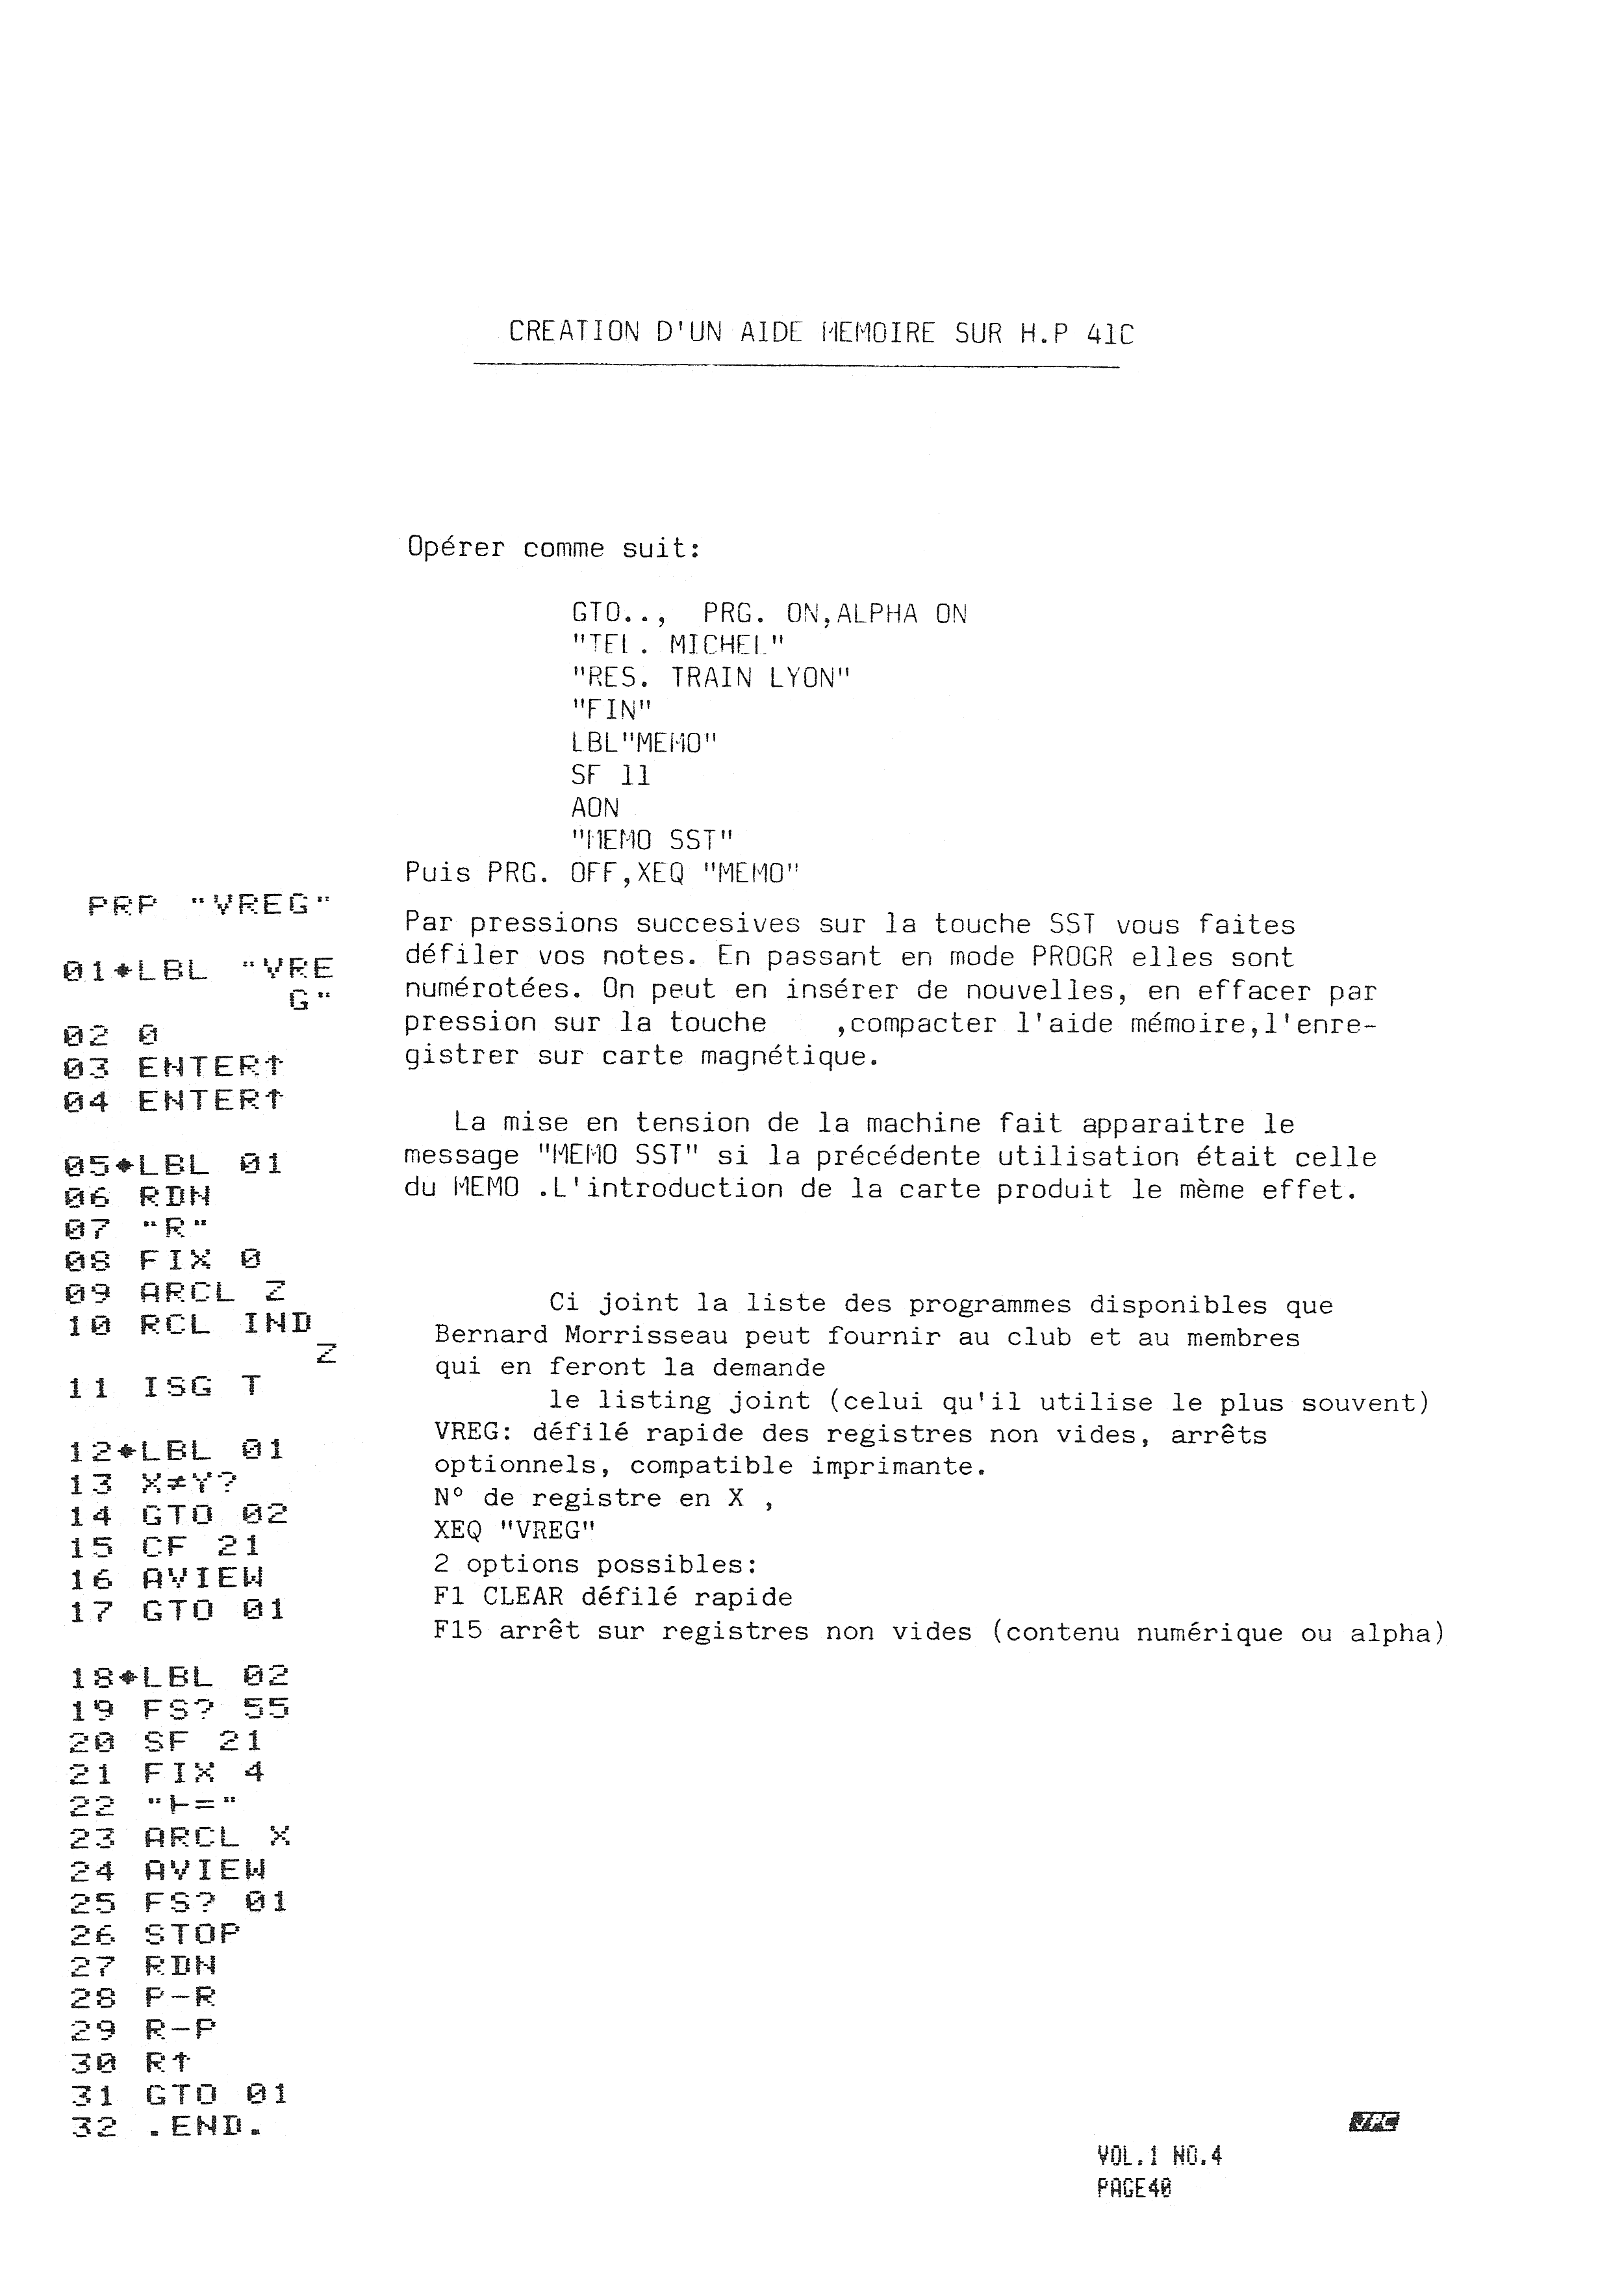 Jp-4-page-40-1000